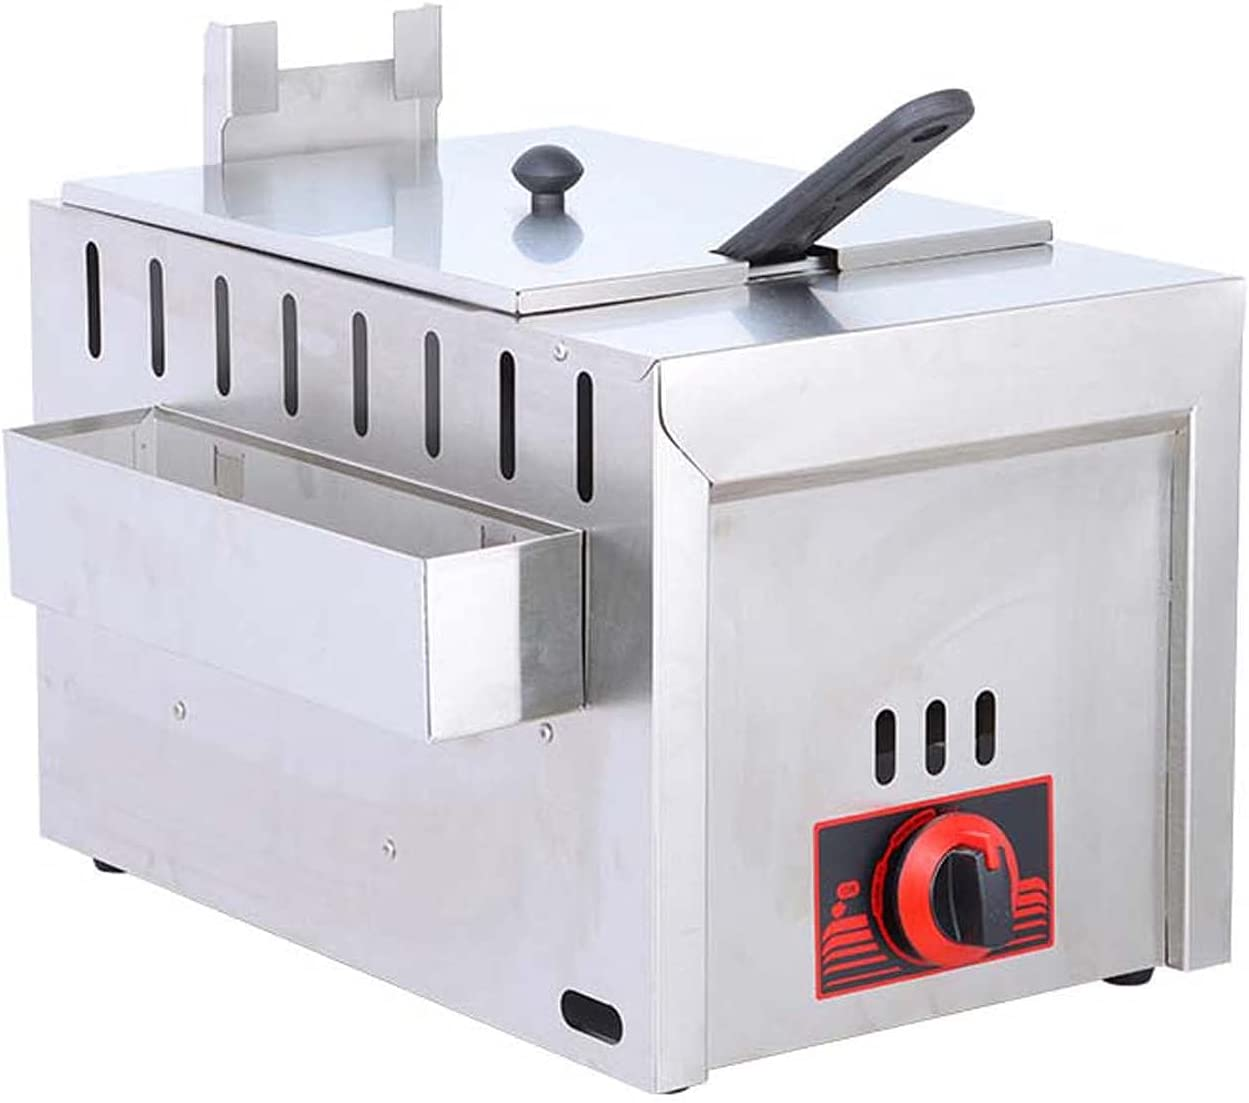 Wgwioo Commercial Countertop Gas Fryer W/Baskets, Stainless Steel Gas Deep Fryer, French Fries Fried Chicken Commercial Food Fry Pan